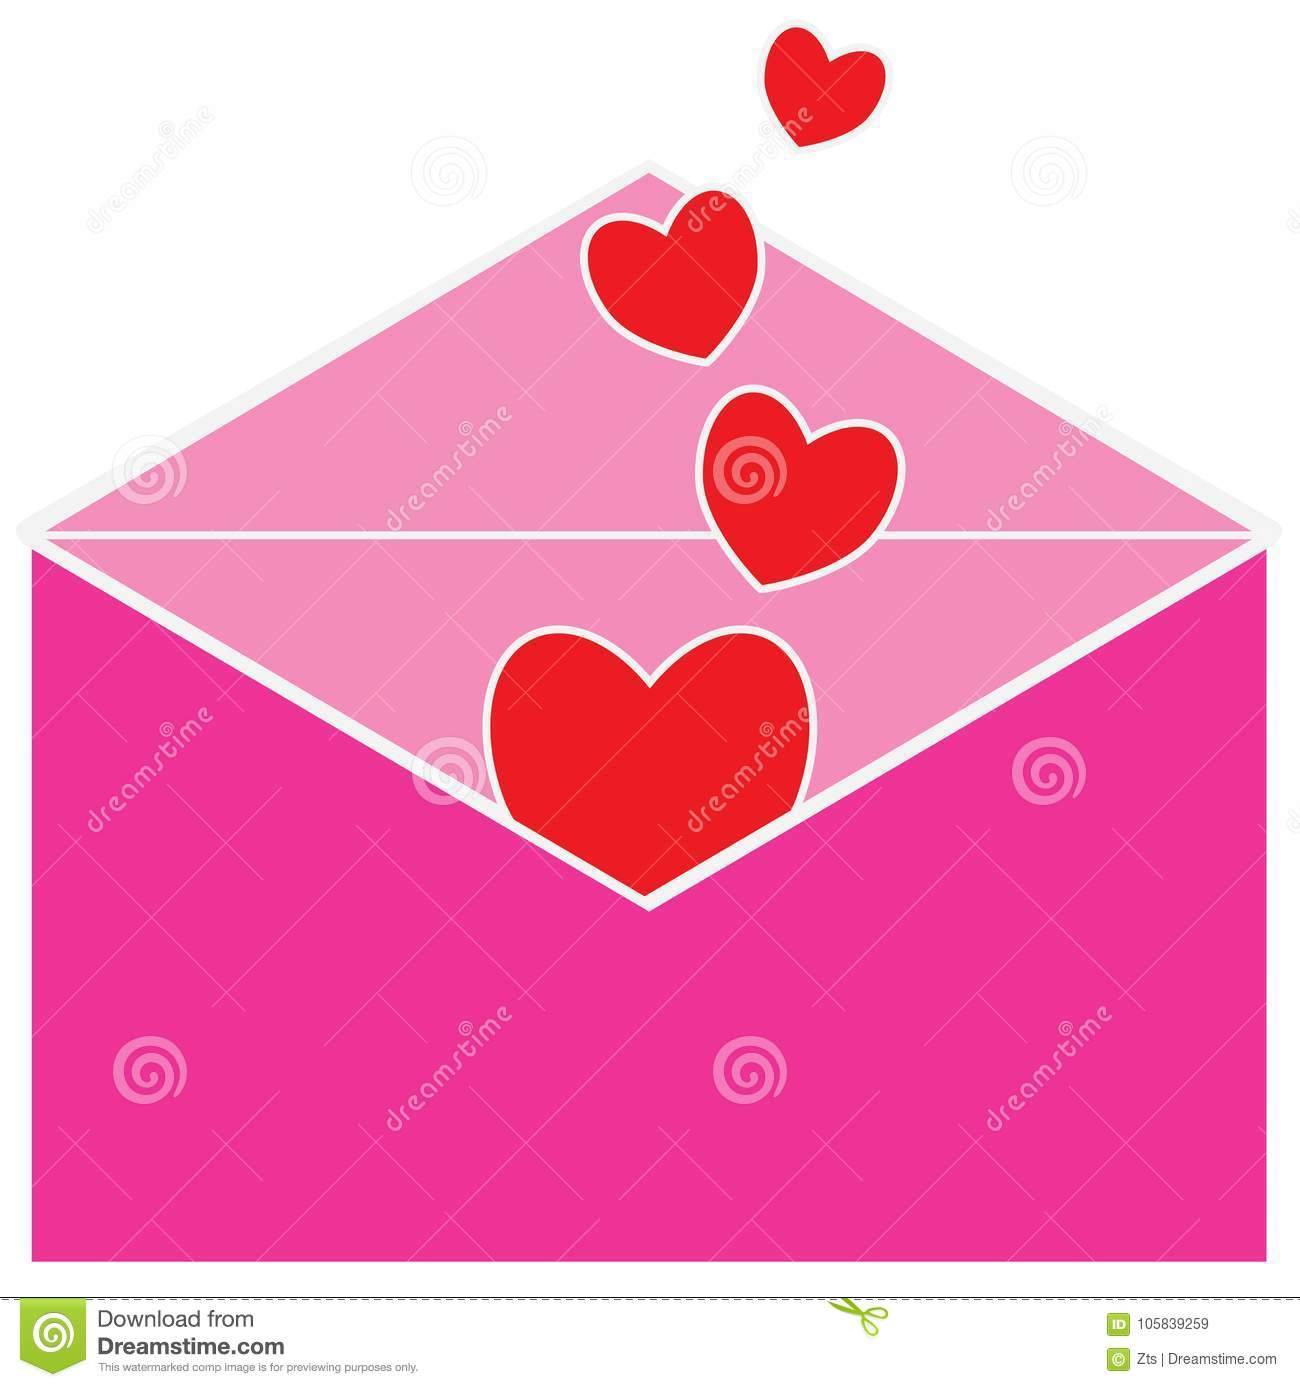 Love Letter For The Valentine Or Valentines Day Hearts Or Heart Shapes Stock Vector